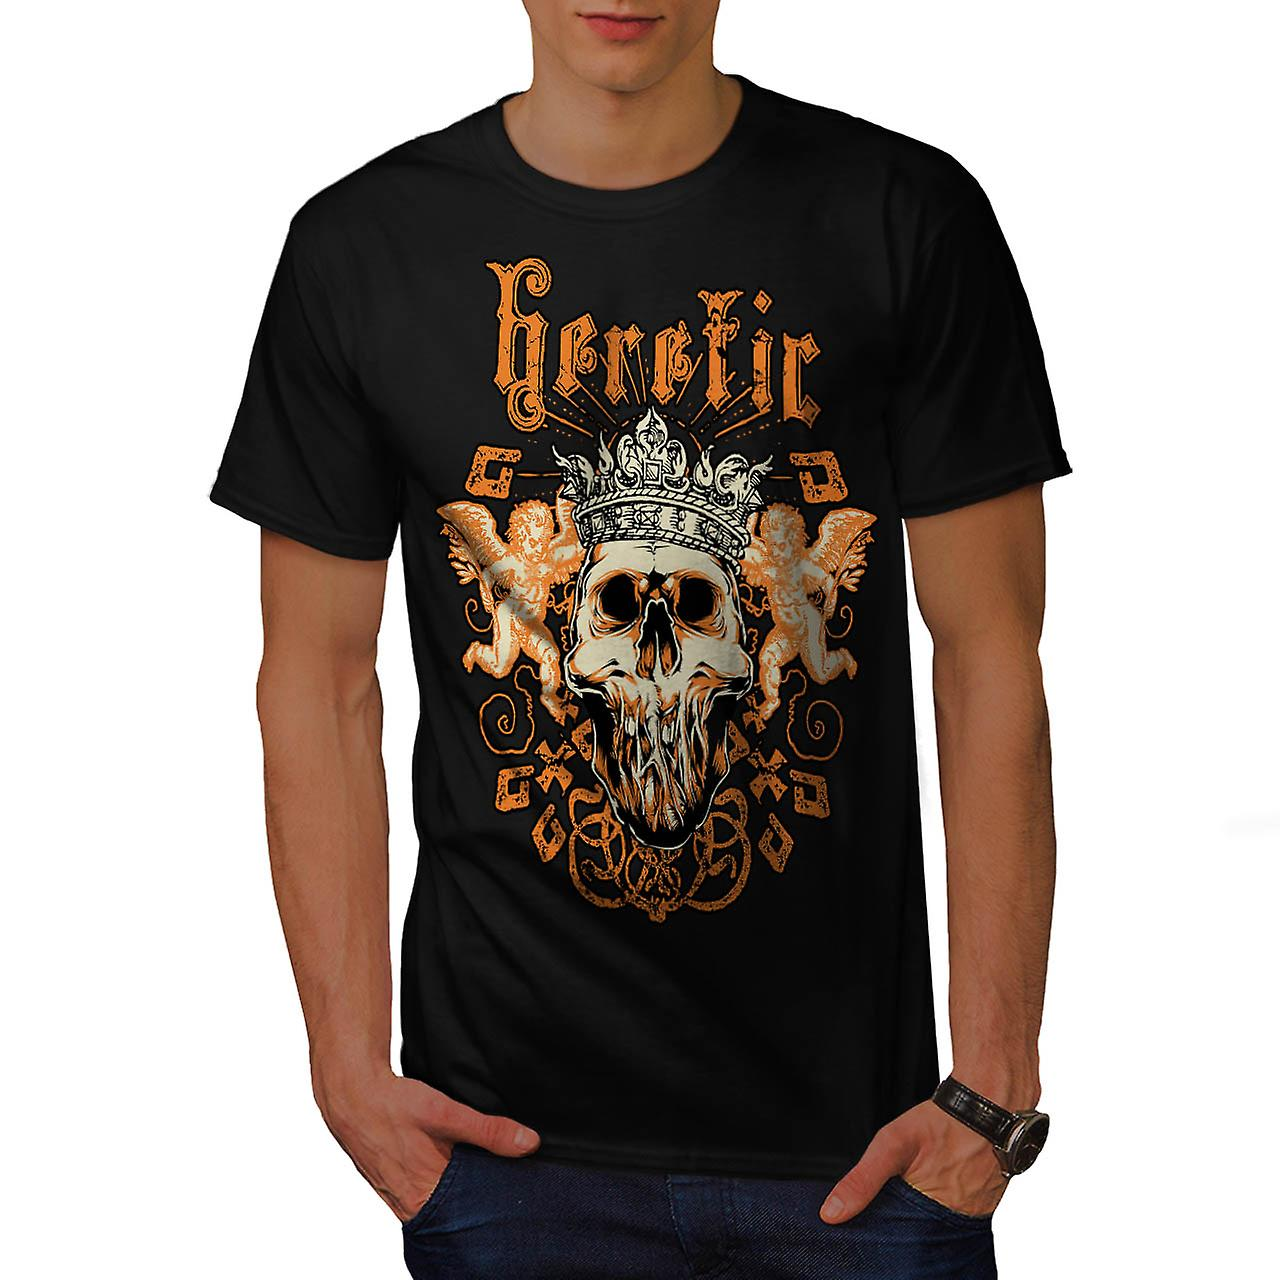 Heretic Monster King Skull Rage Men Black T-shirt | Wellcoda